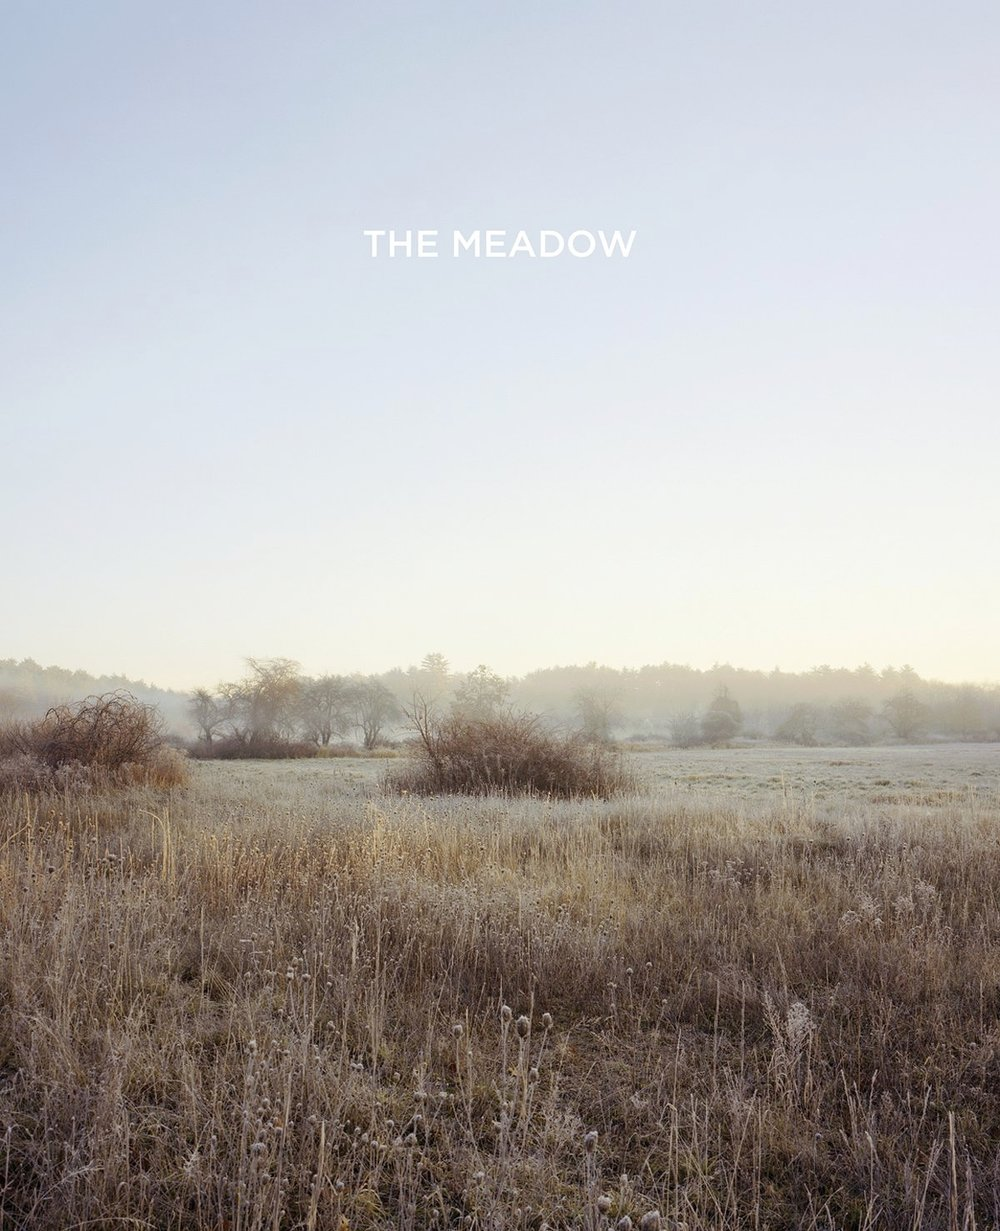 bosworth & kelley: the meadow